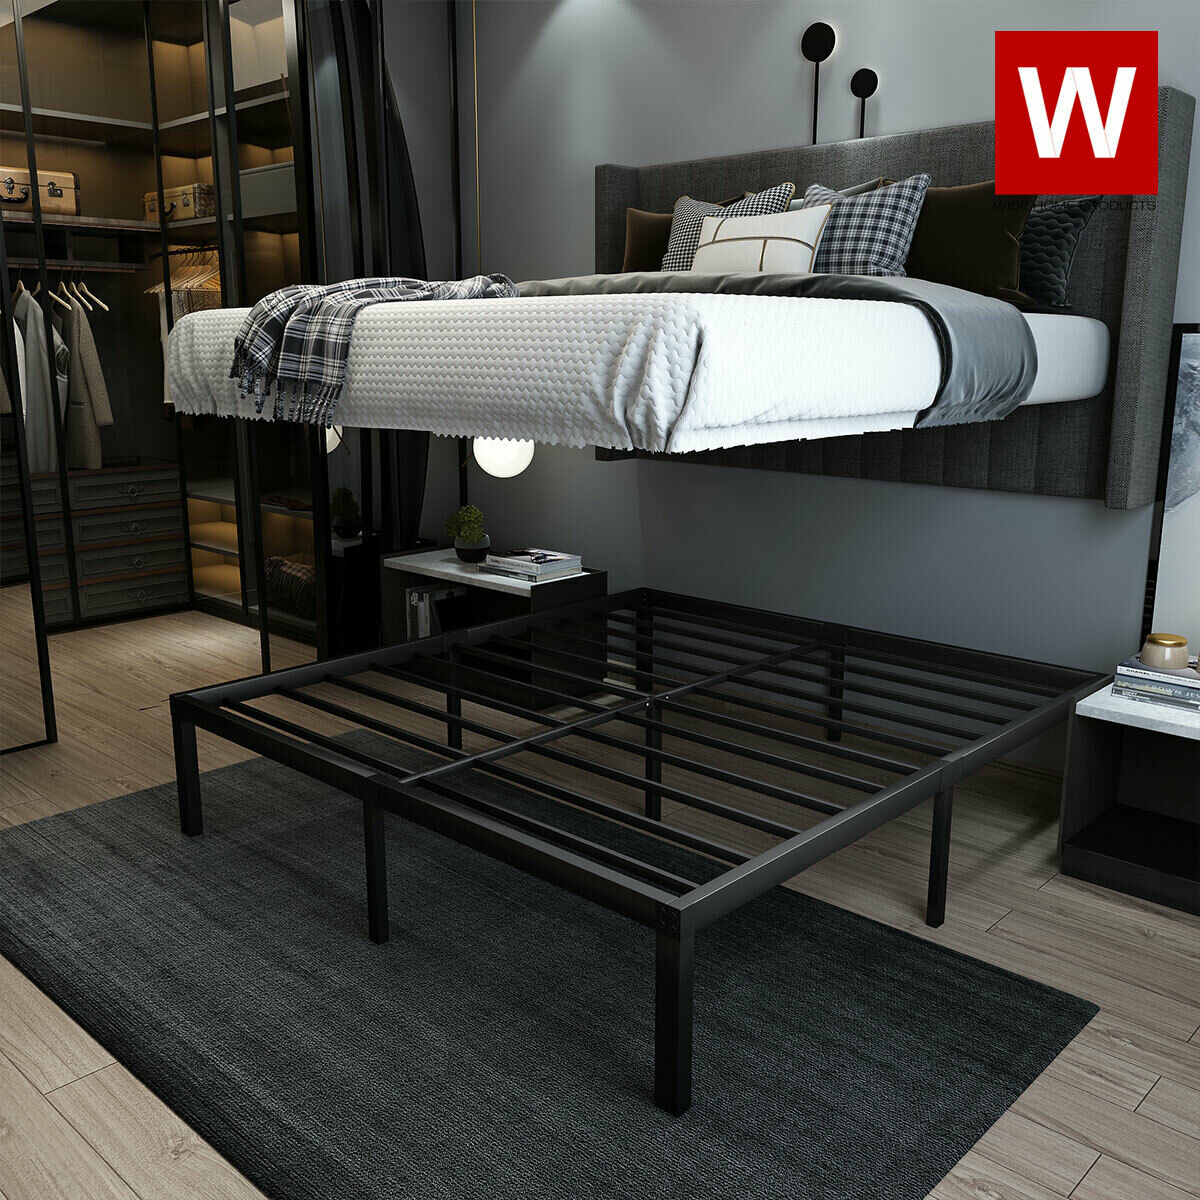 Picture of: Cal King Heavy Duty Steel Bed Frame Cali King Size Platform Bed Height 14 For Sale Online